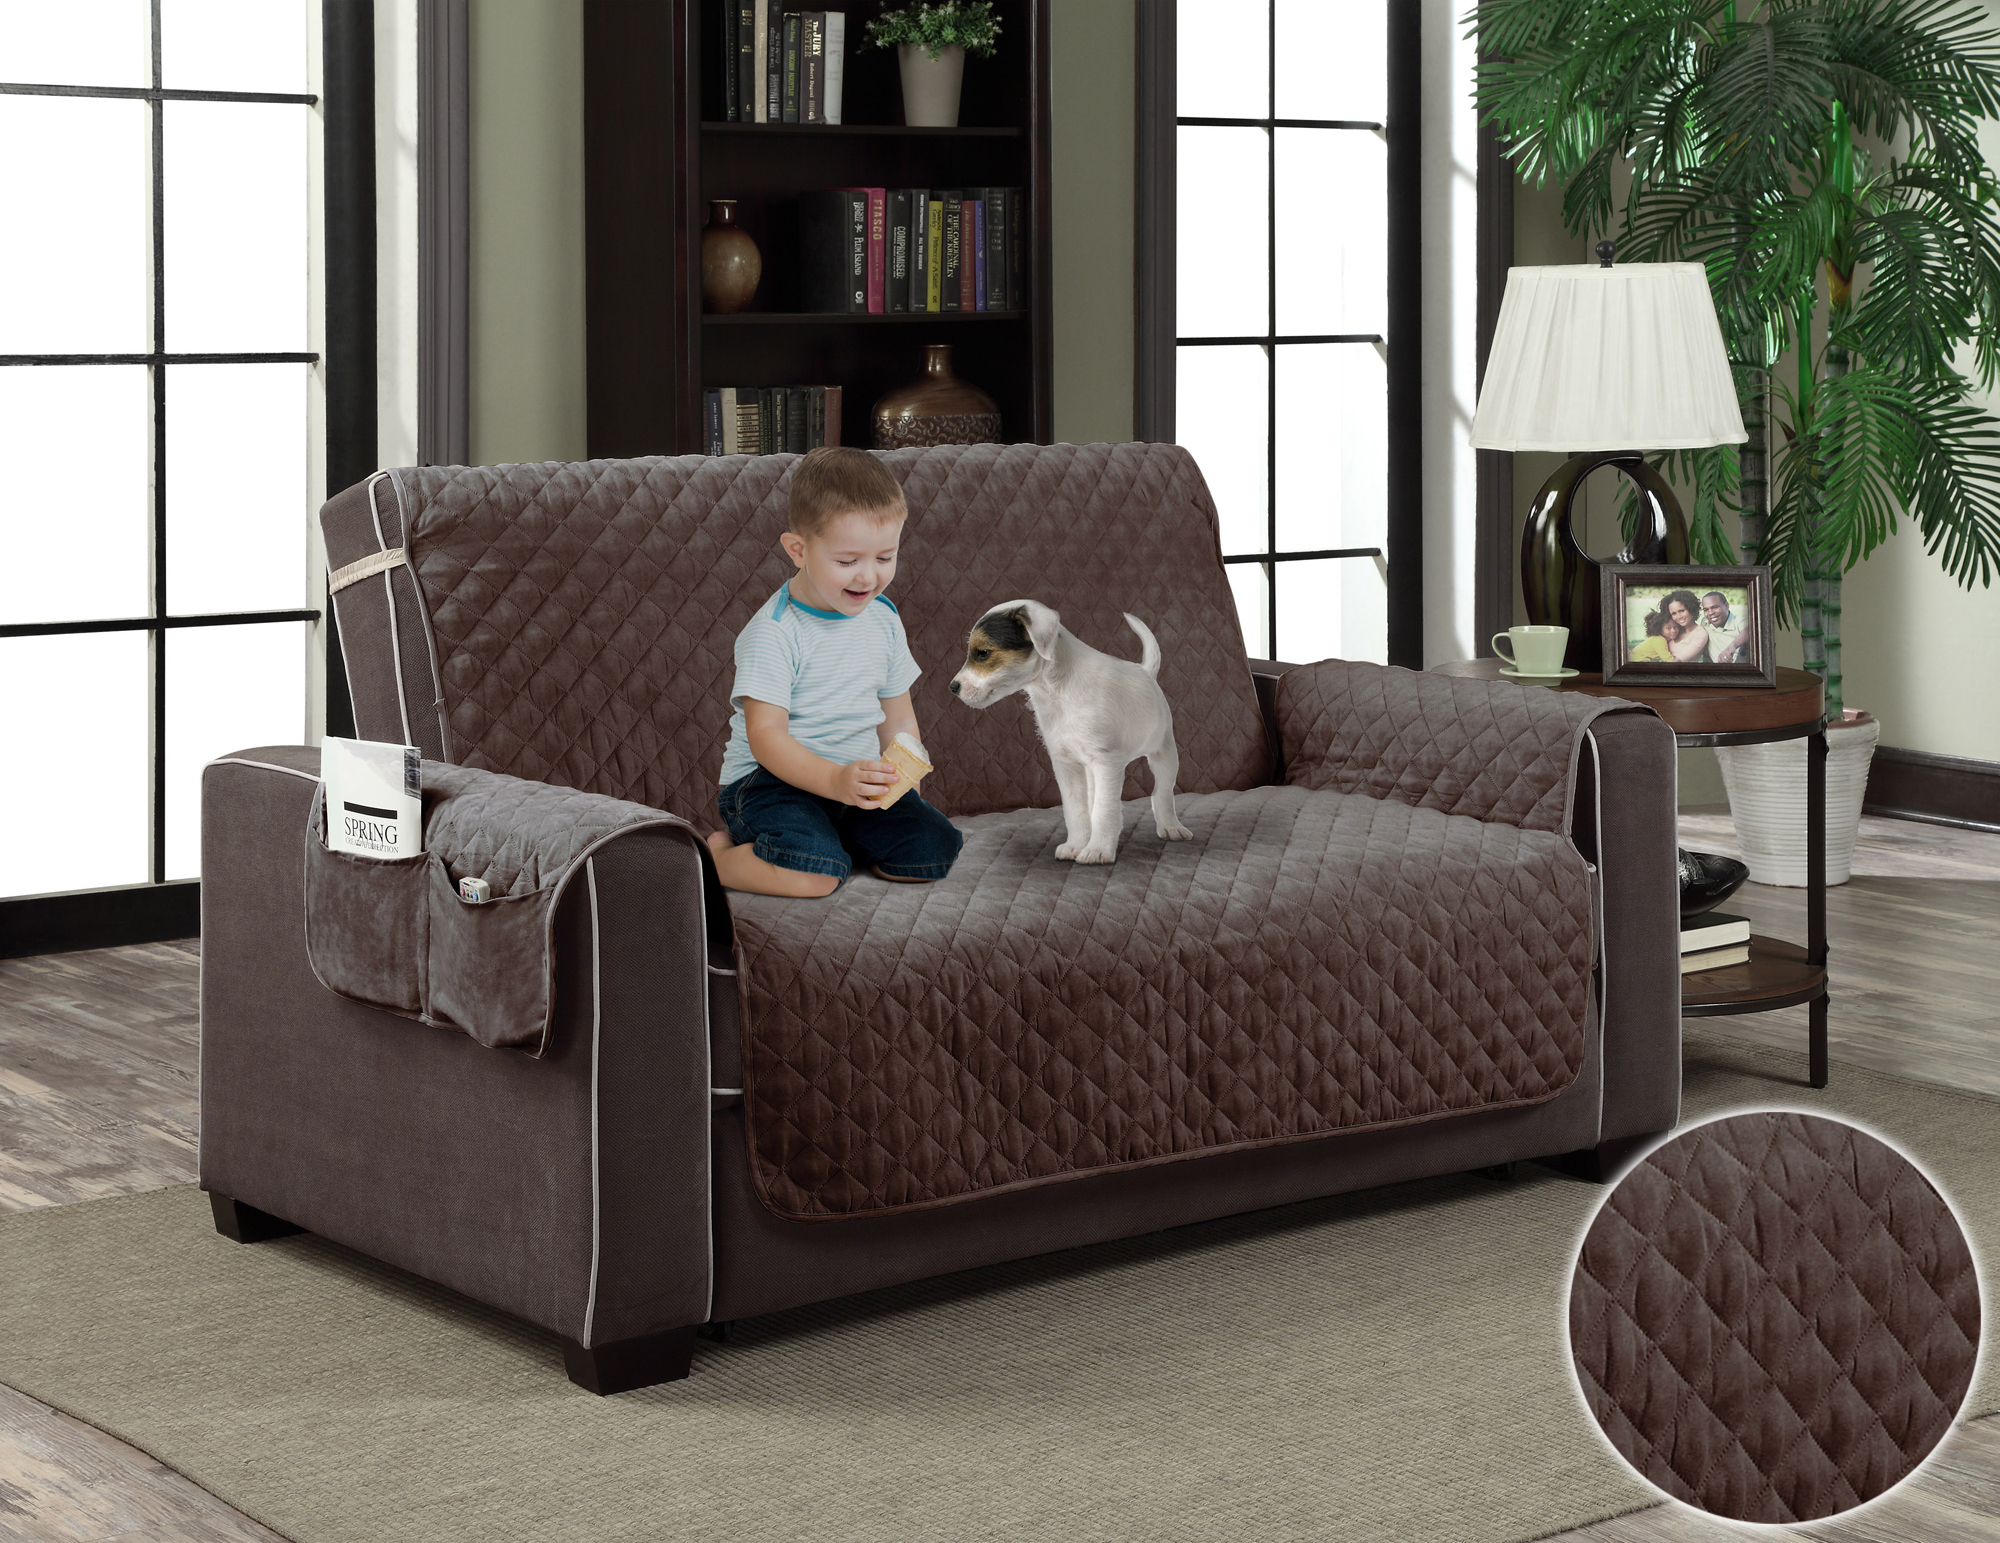 Brown micro suede slipcover pet dog cat furniture couch cover protector with pockets walmart com